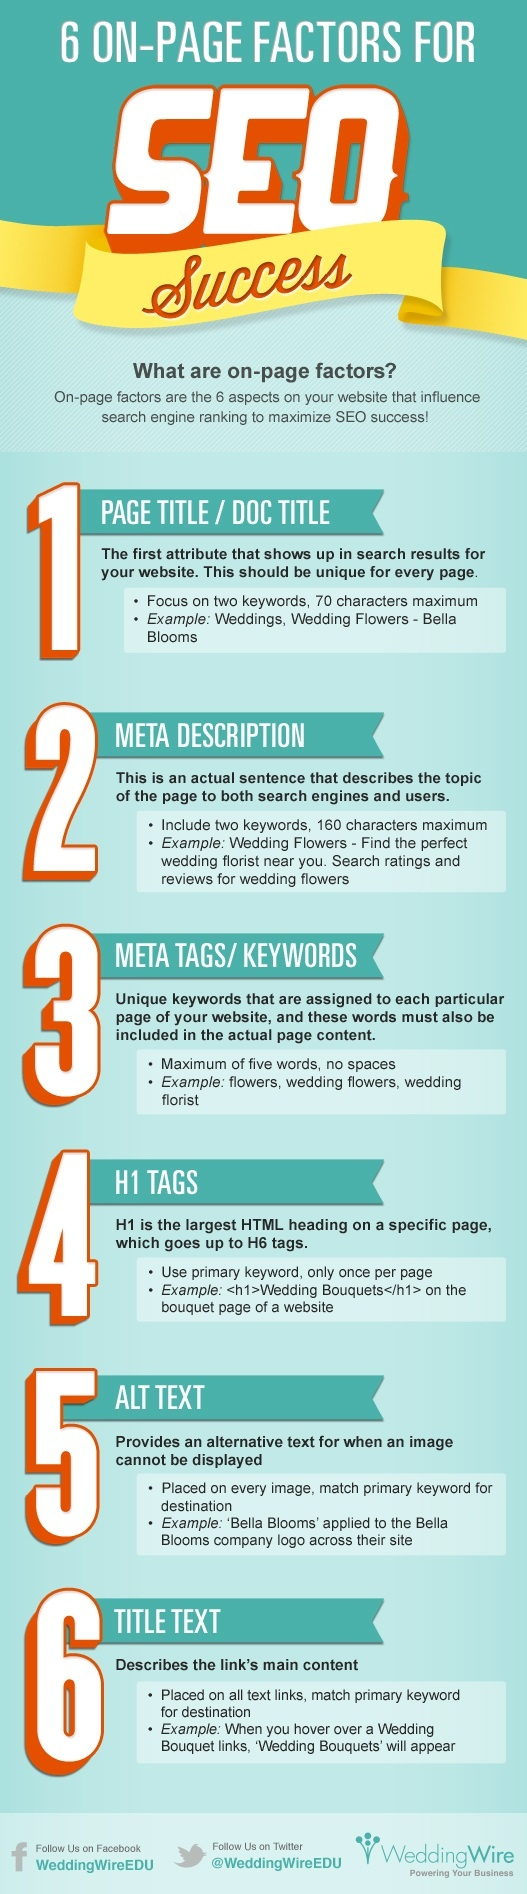 Use these steps to improve your SEO on-page strategy.